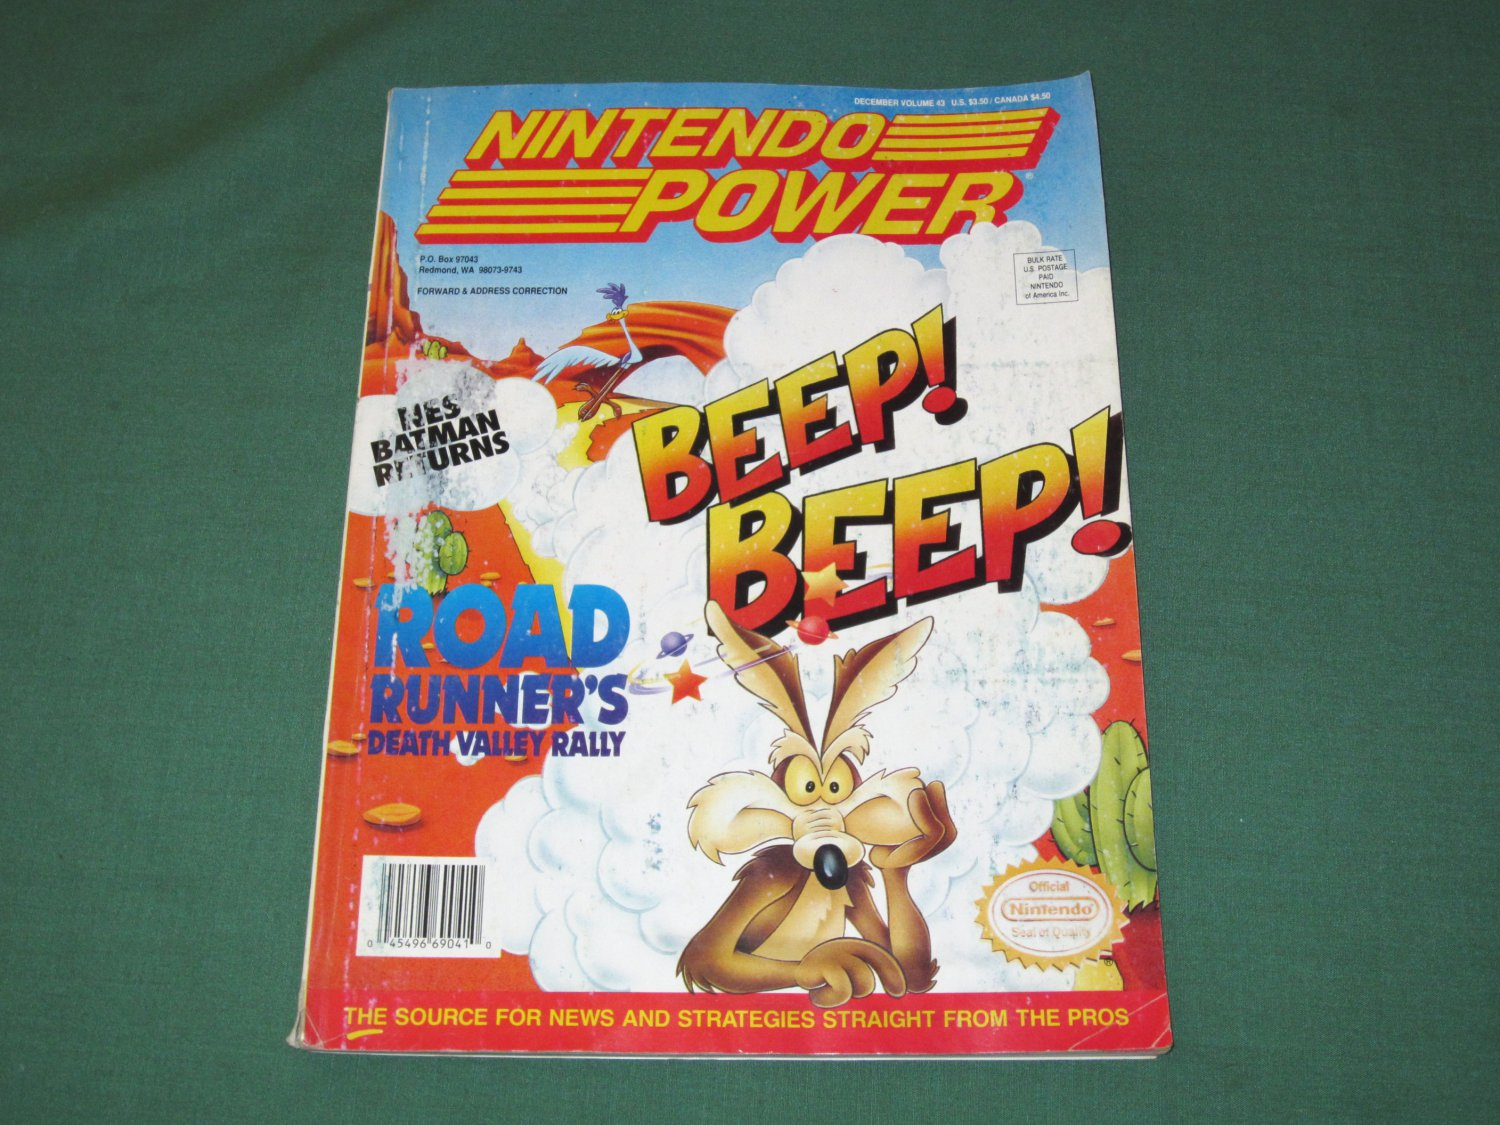 Nintendo Power Volume 43 (Lost Vikings Poster)